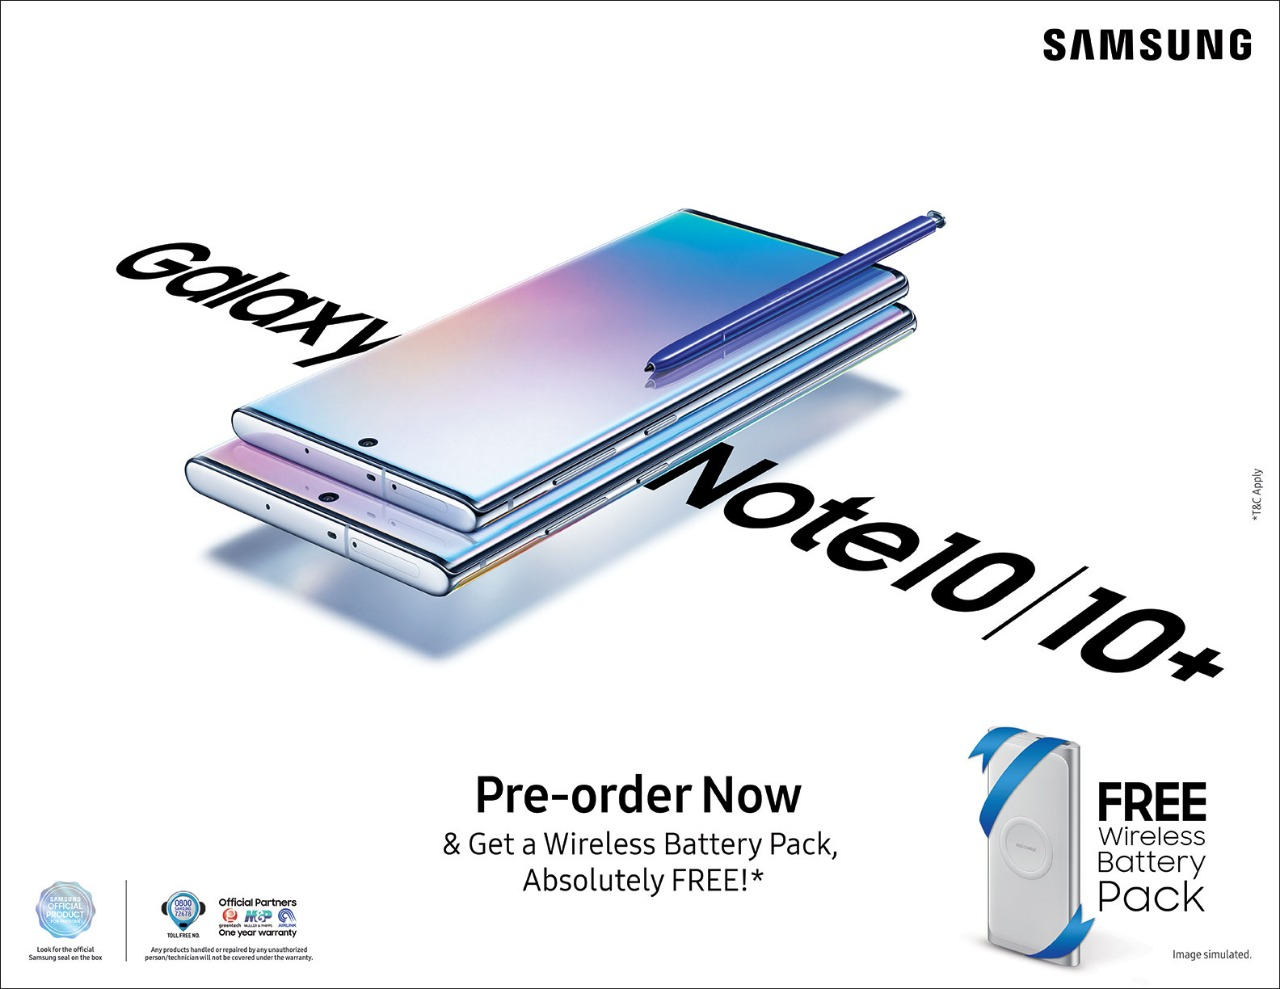 Samsung Galaxy Note 10|10+ Pre Bookings Now Open in Pakistan